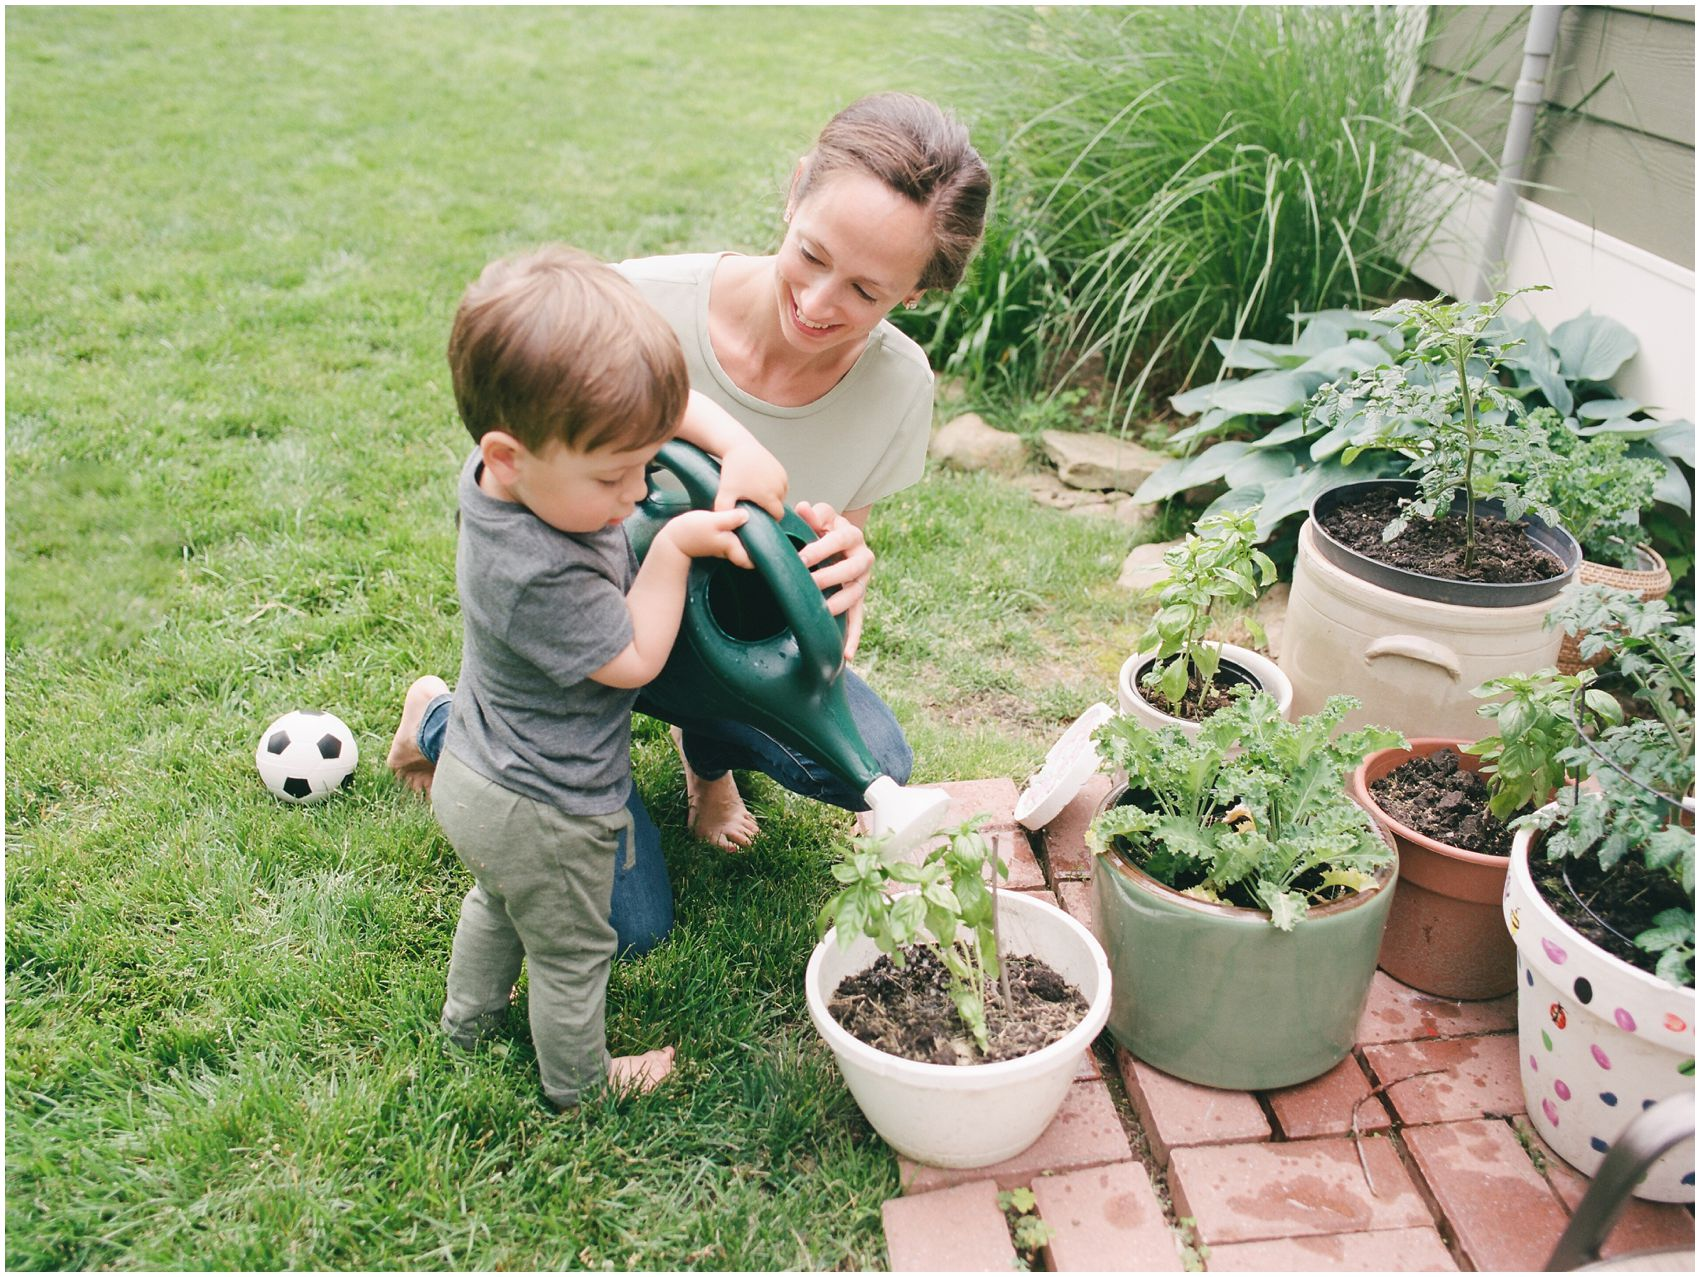 little boy is gardening with his mom in their backyard